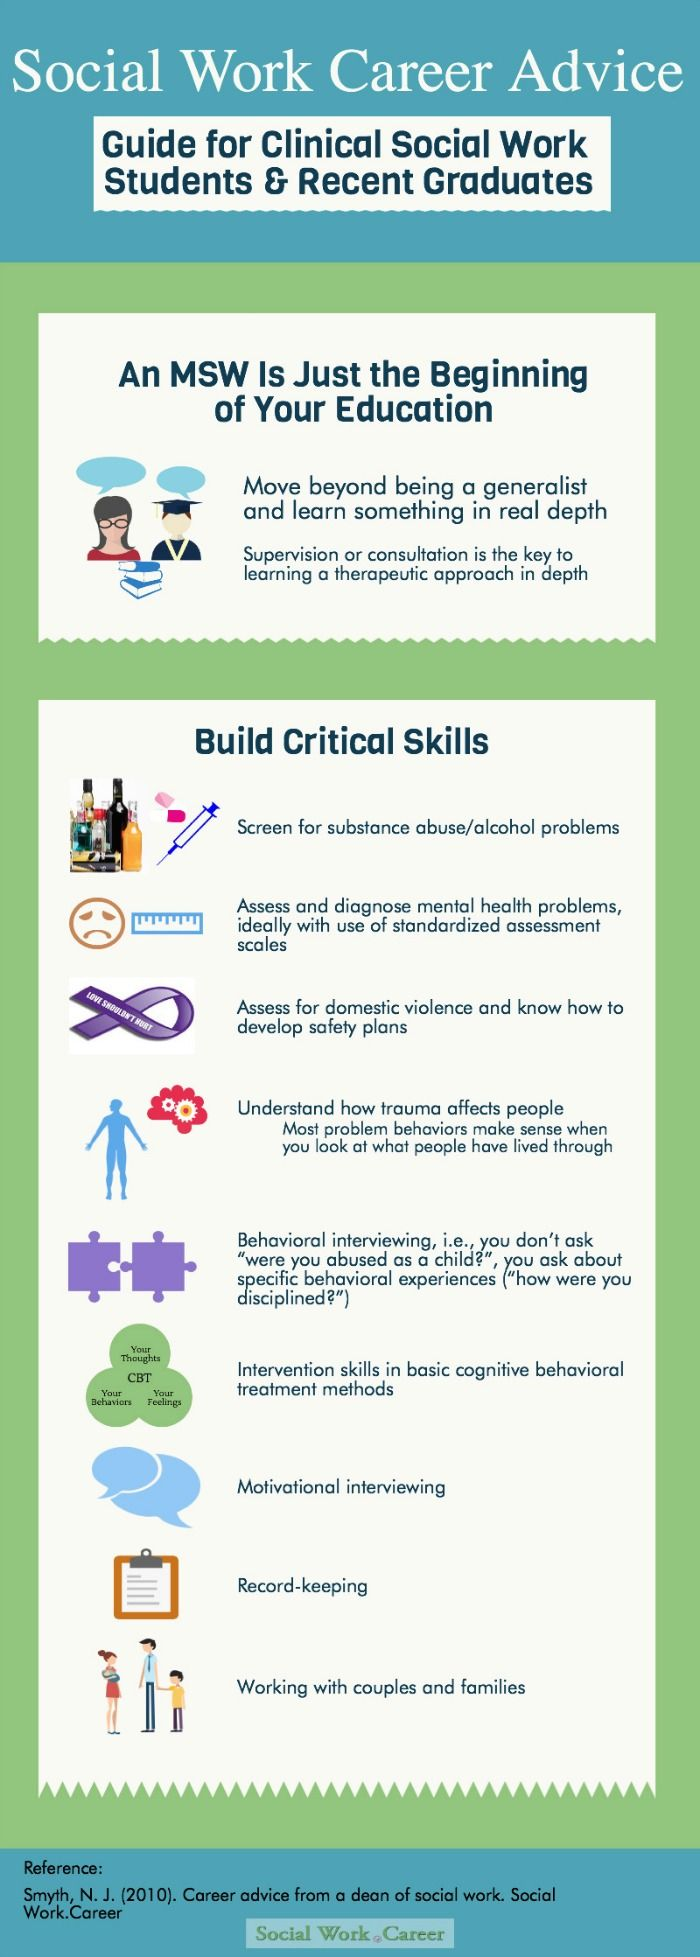 best images about social work visions the social the top 10 skills clinical social workers must develop < based upon an interview